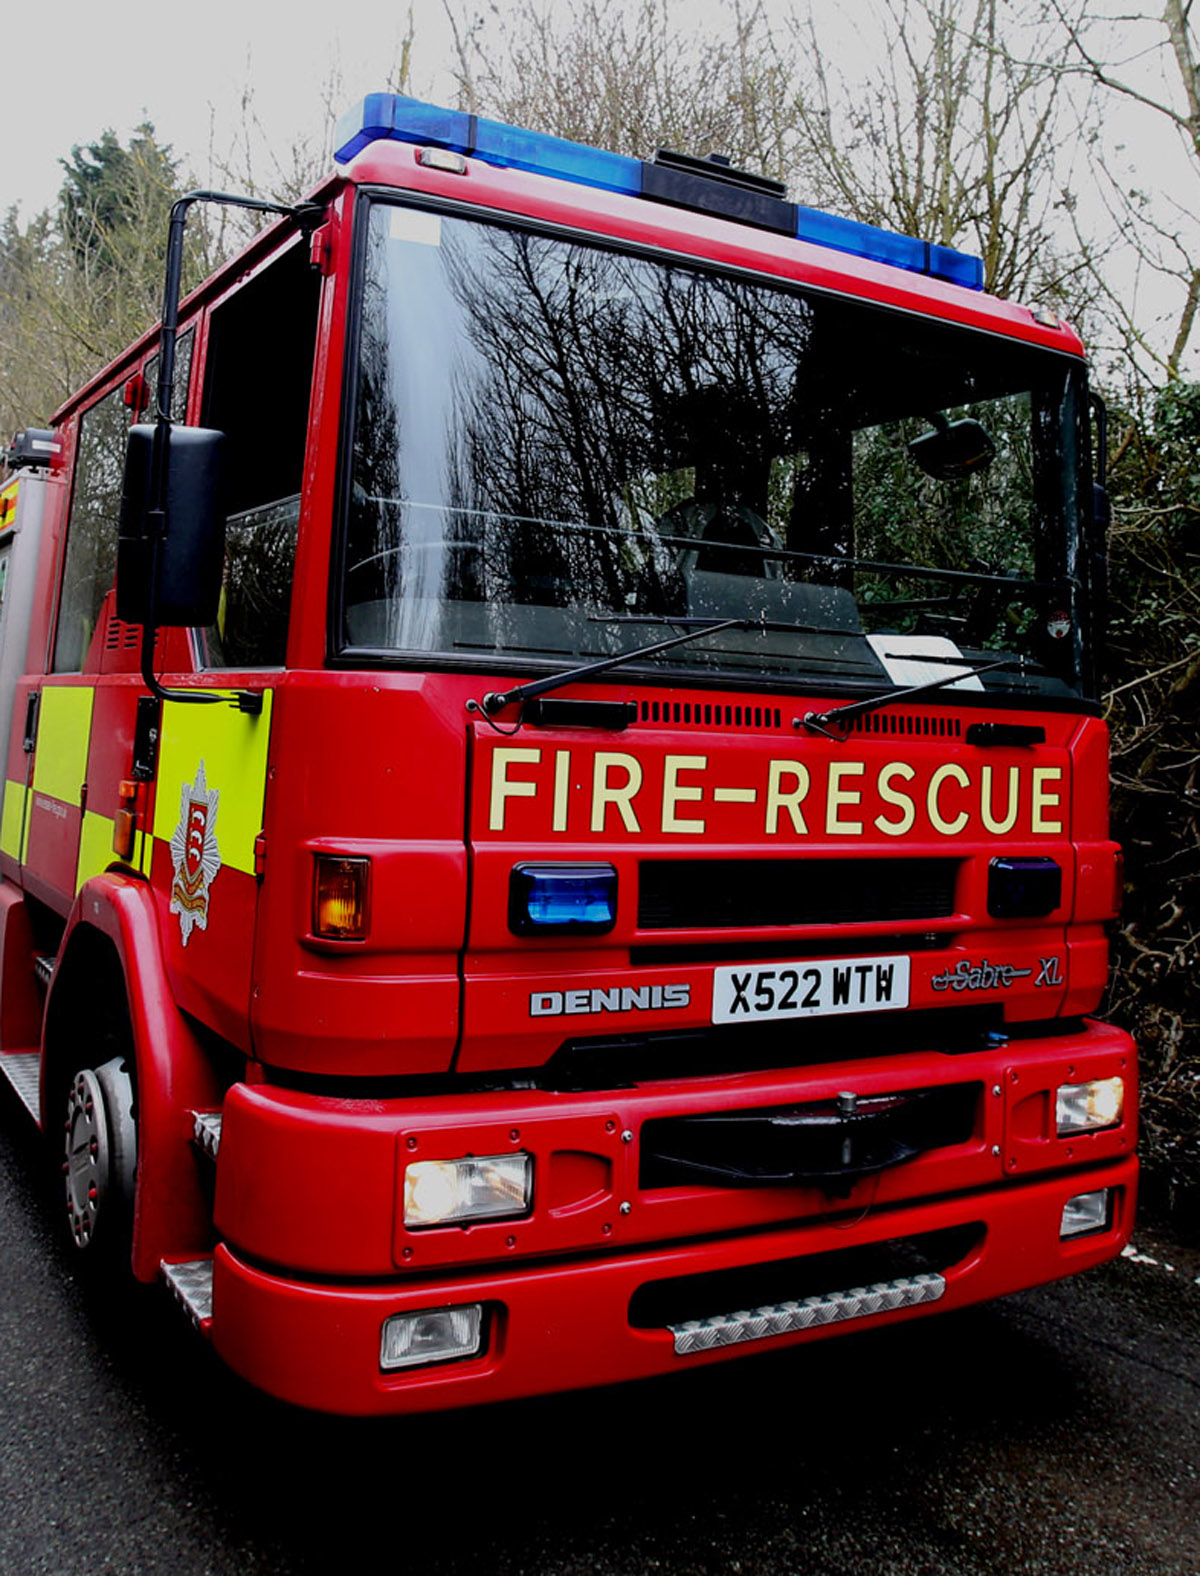 Crews called to seven deliberate fires within three hours